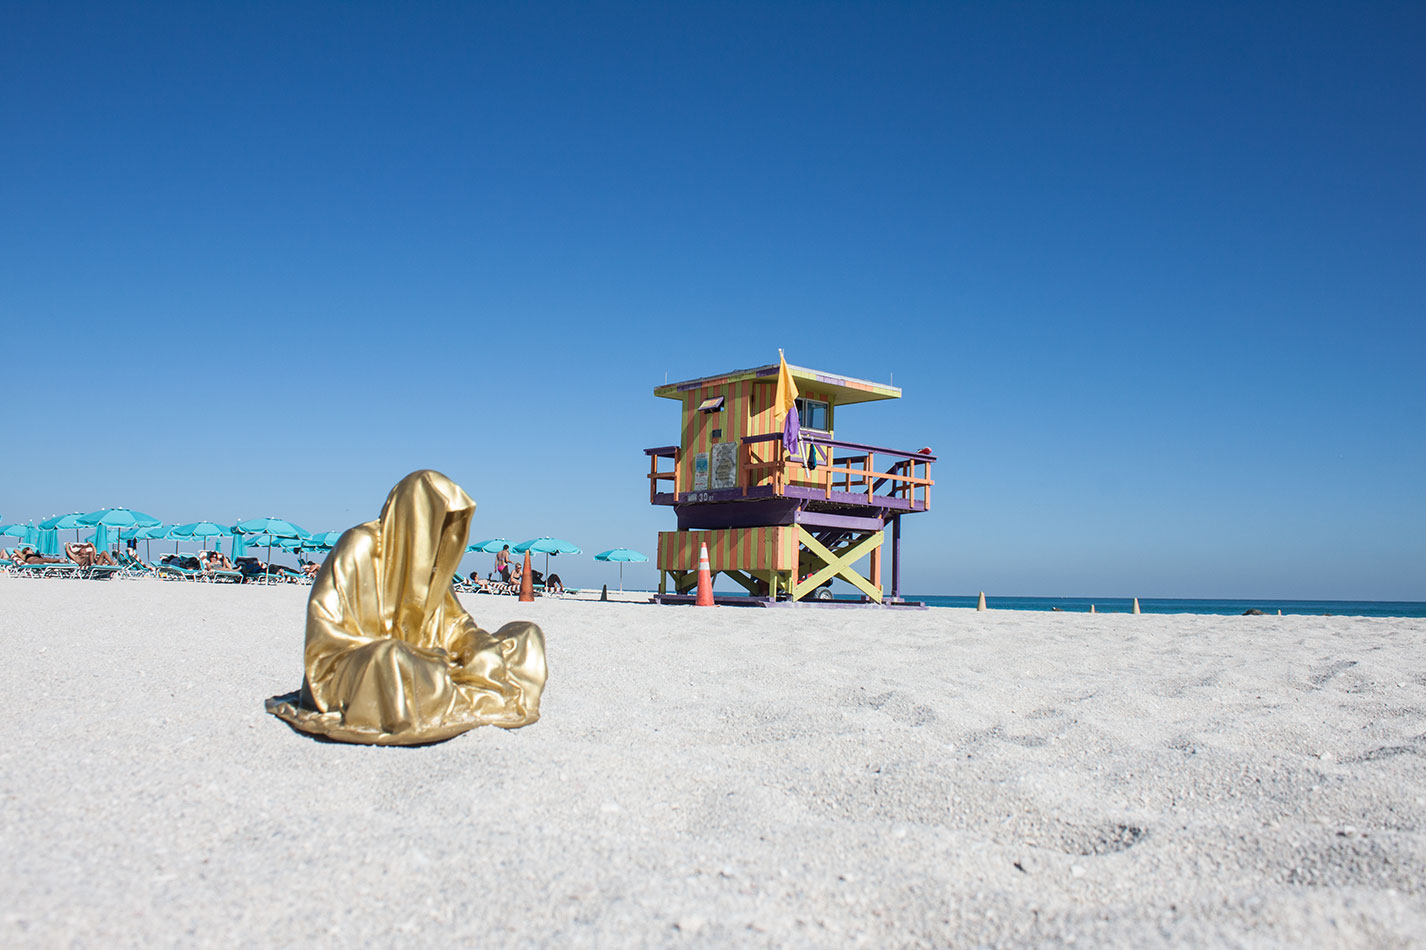 public-art-basel-miami-beach-fair-usa-florida-guardians-of-time-manfred-kili-kielnhofer-contemporary-fine-art-modern-arts-design-antiques-sculpture-7082